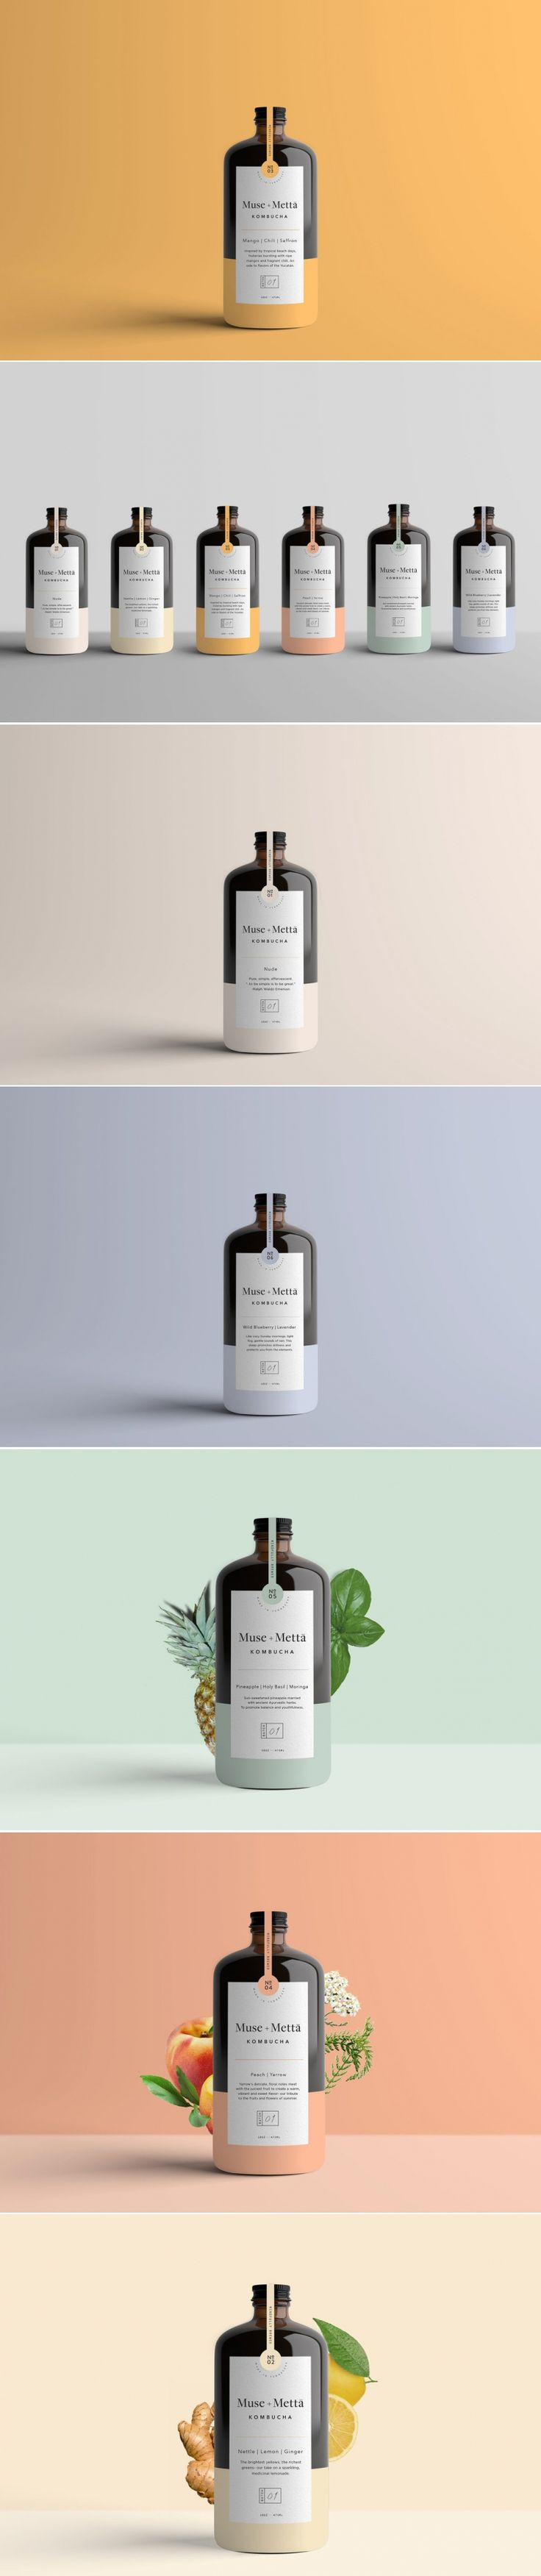 Muse + Metta Is Serving Up Flavor With Beautiful Minimalistic Packaging — The Dieline | Packaging & Branding Design & Innovation News